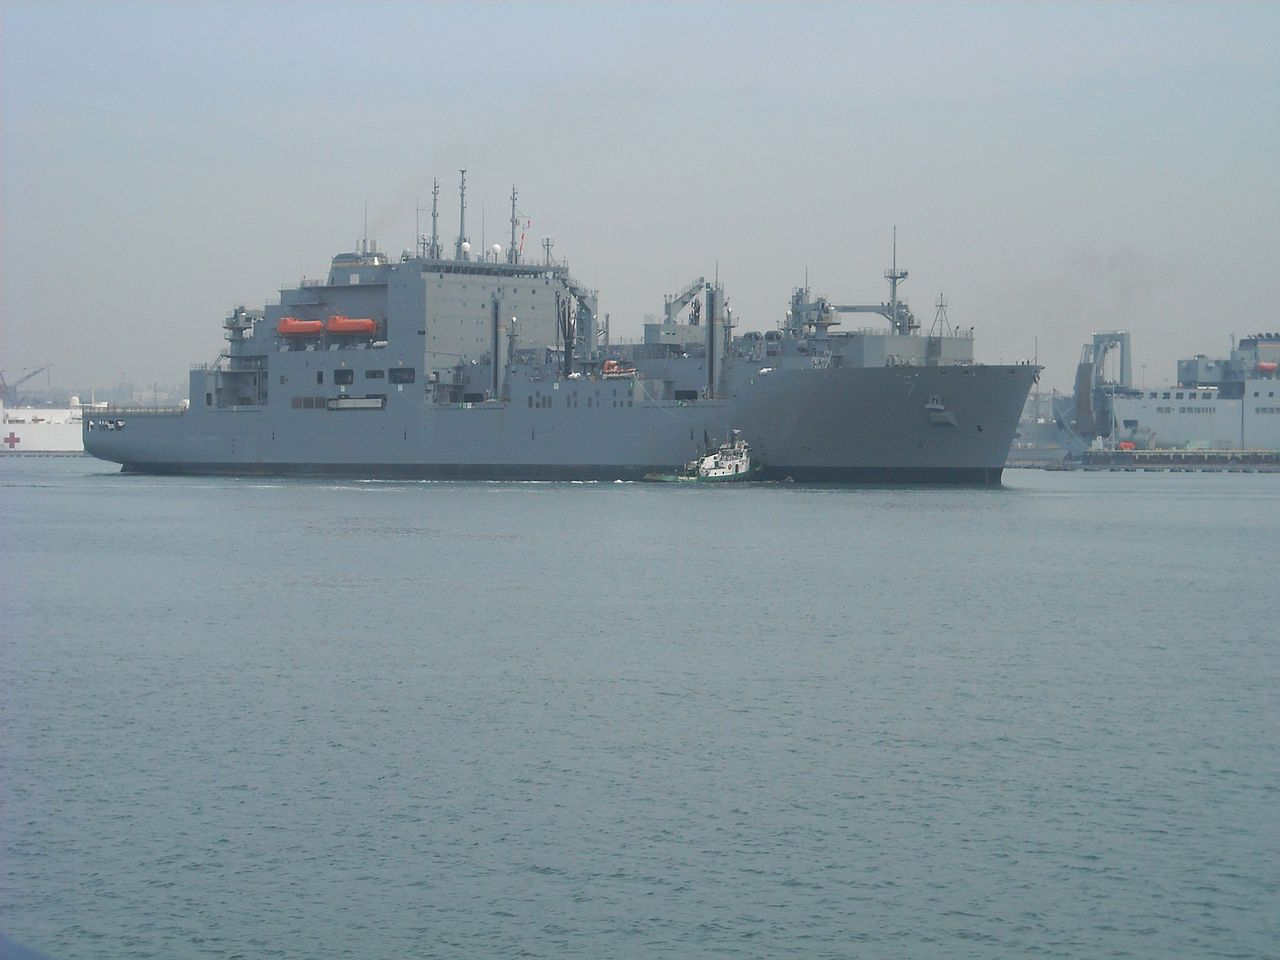 USNS Carl Brashear at ANCH-E Pier Subic Bay